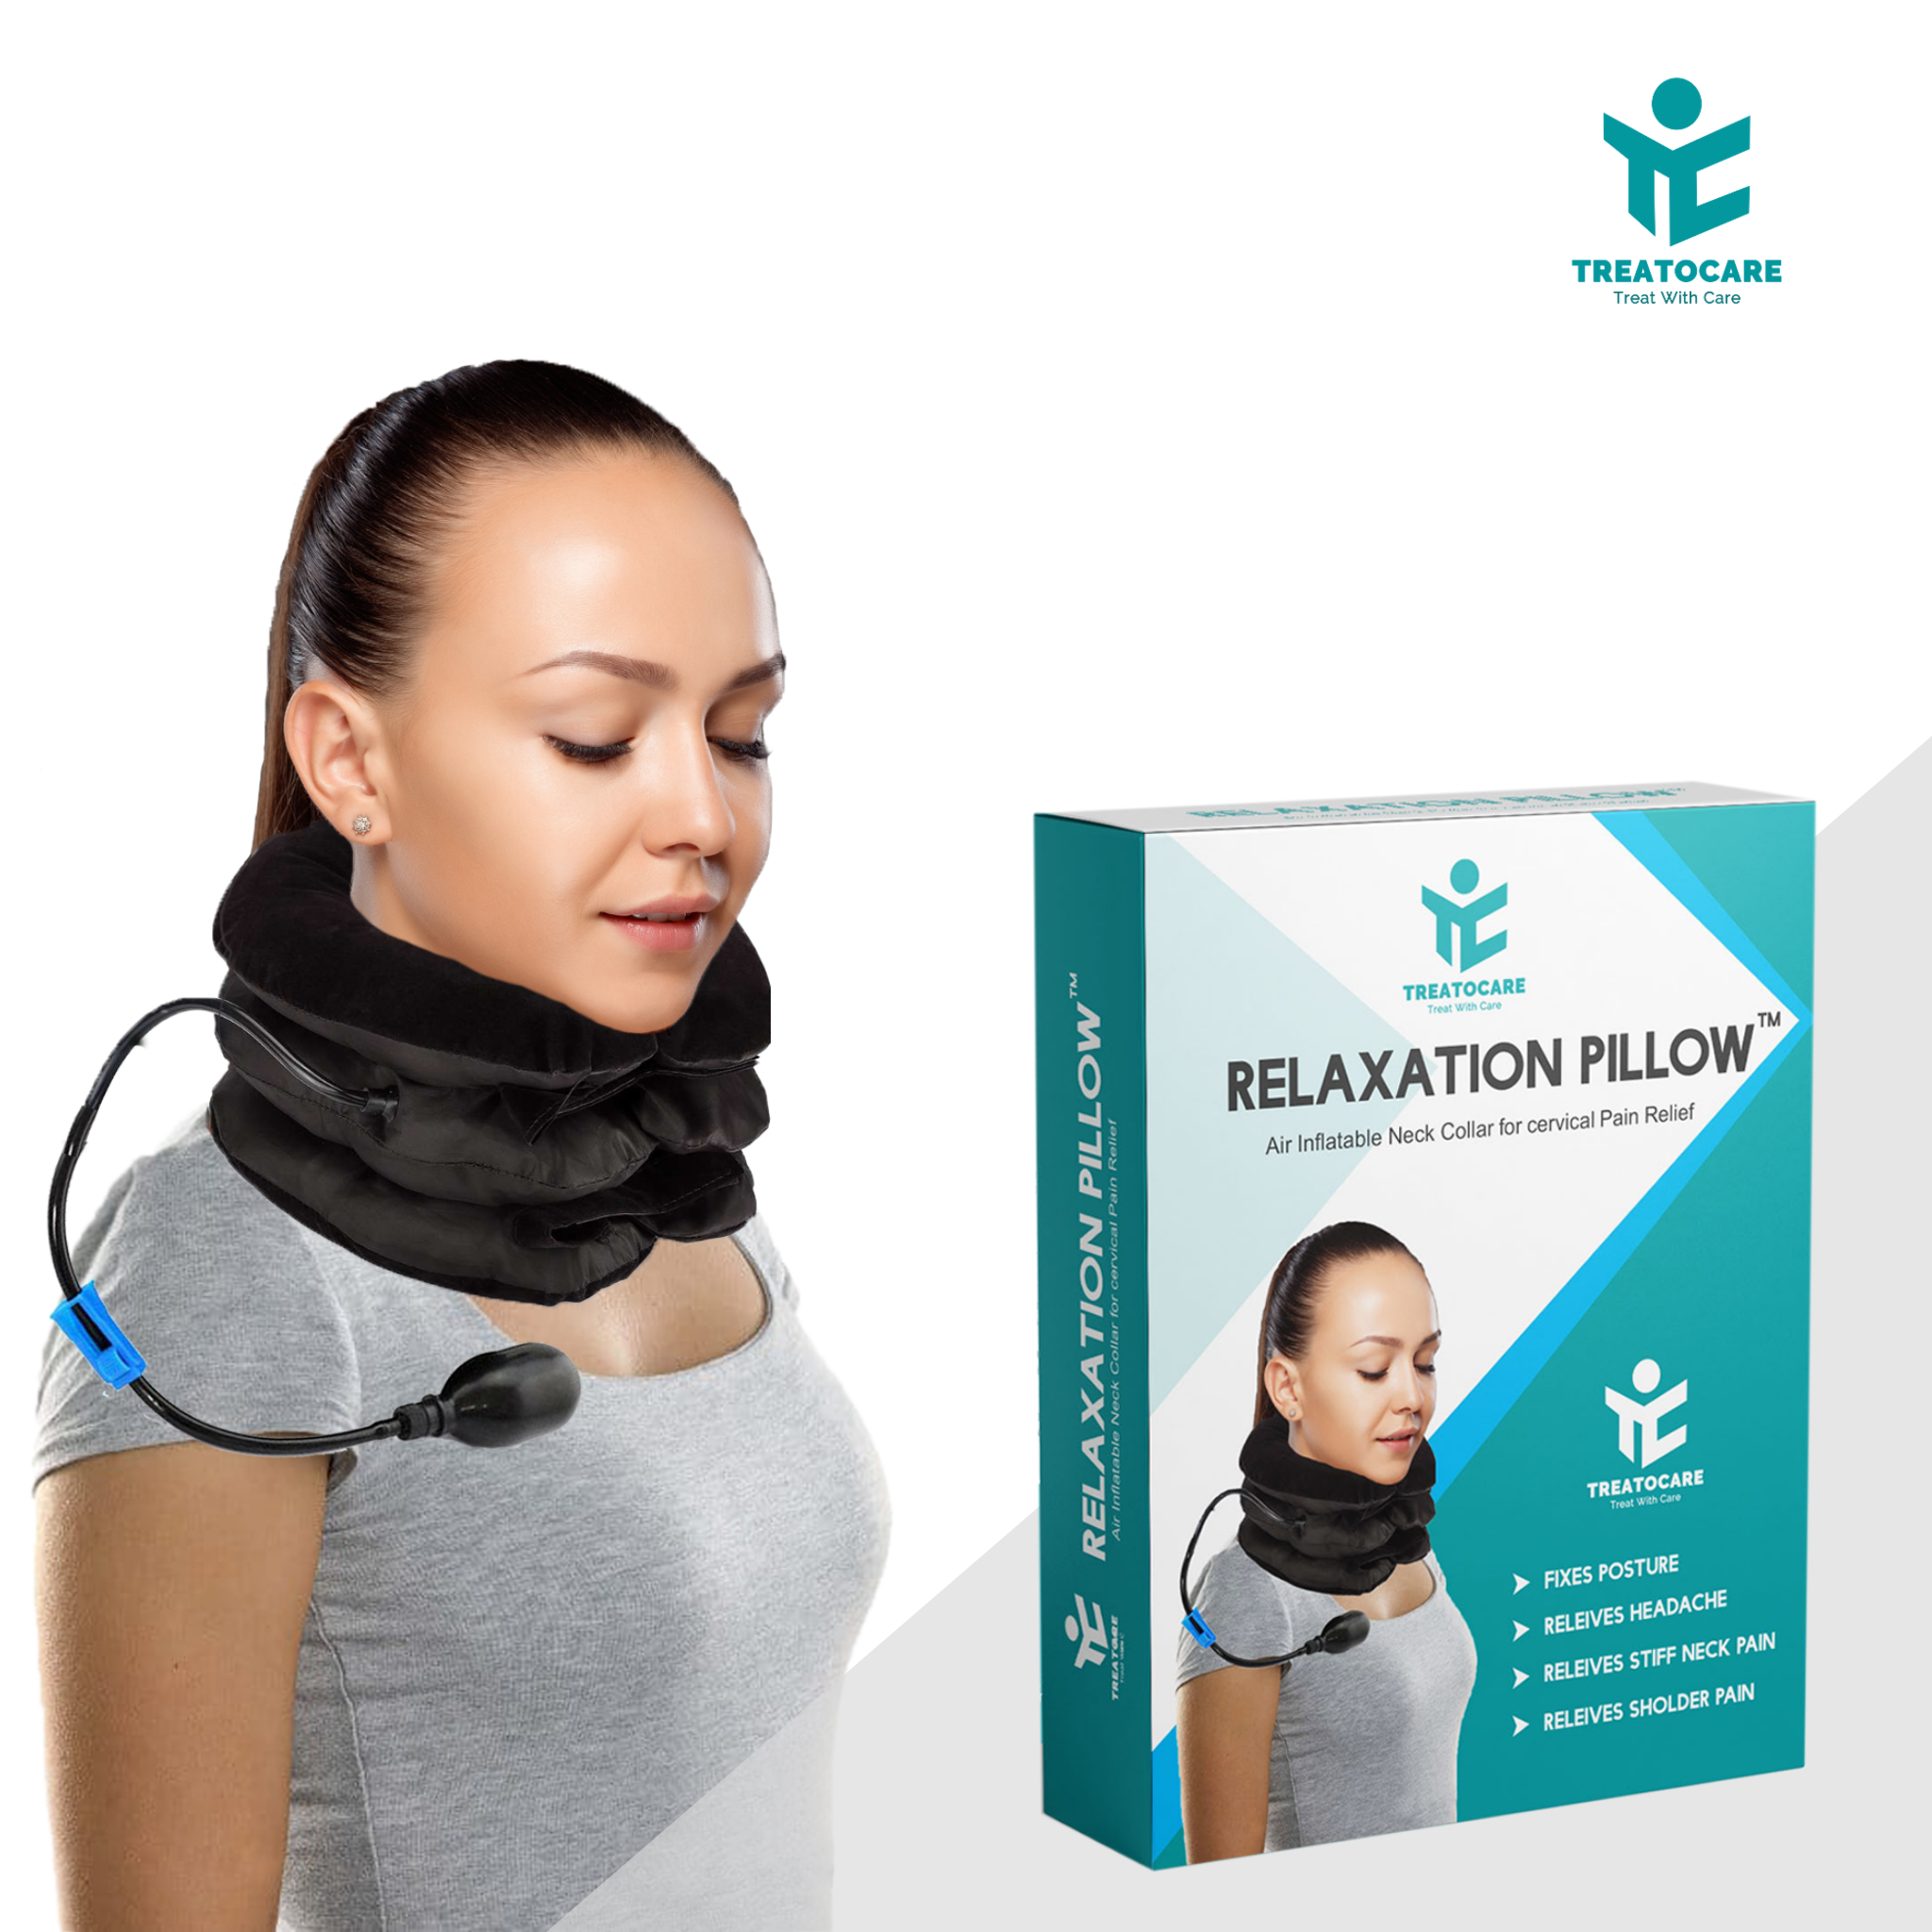 Relaxation Pillow™ - For Advance Treatment